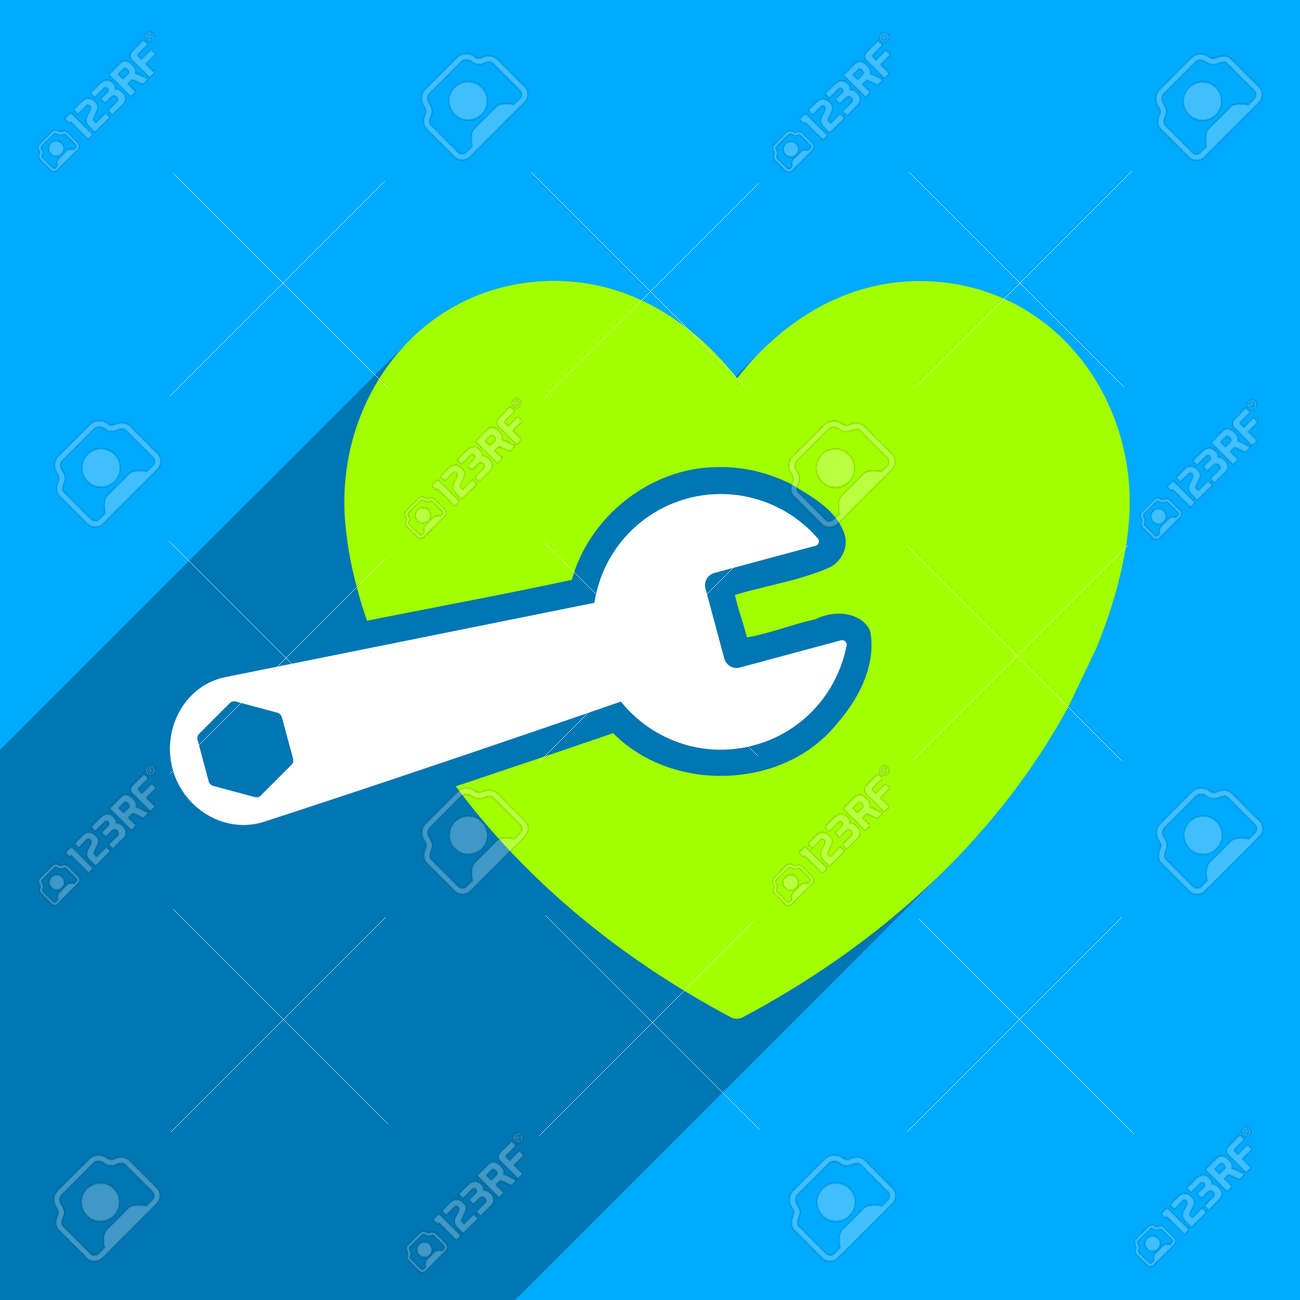 Heart Surgery Long Shadow Vector Icon Style Is A Flat Heart Surgery Iconic Symbol On A Blue Square Background Royalty Free Cliparts Vetores E Ilustracoes Stock Image 53658054